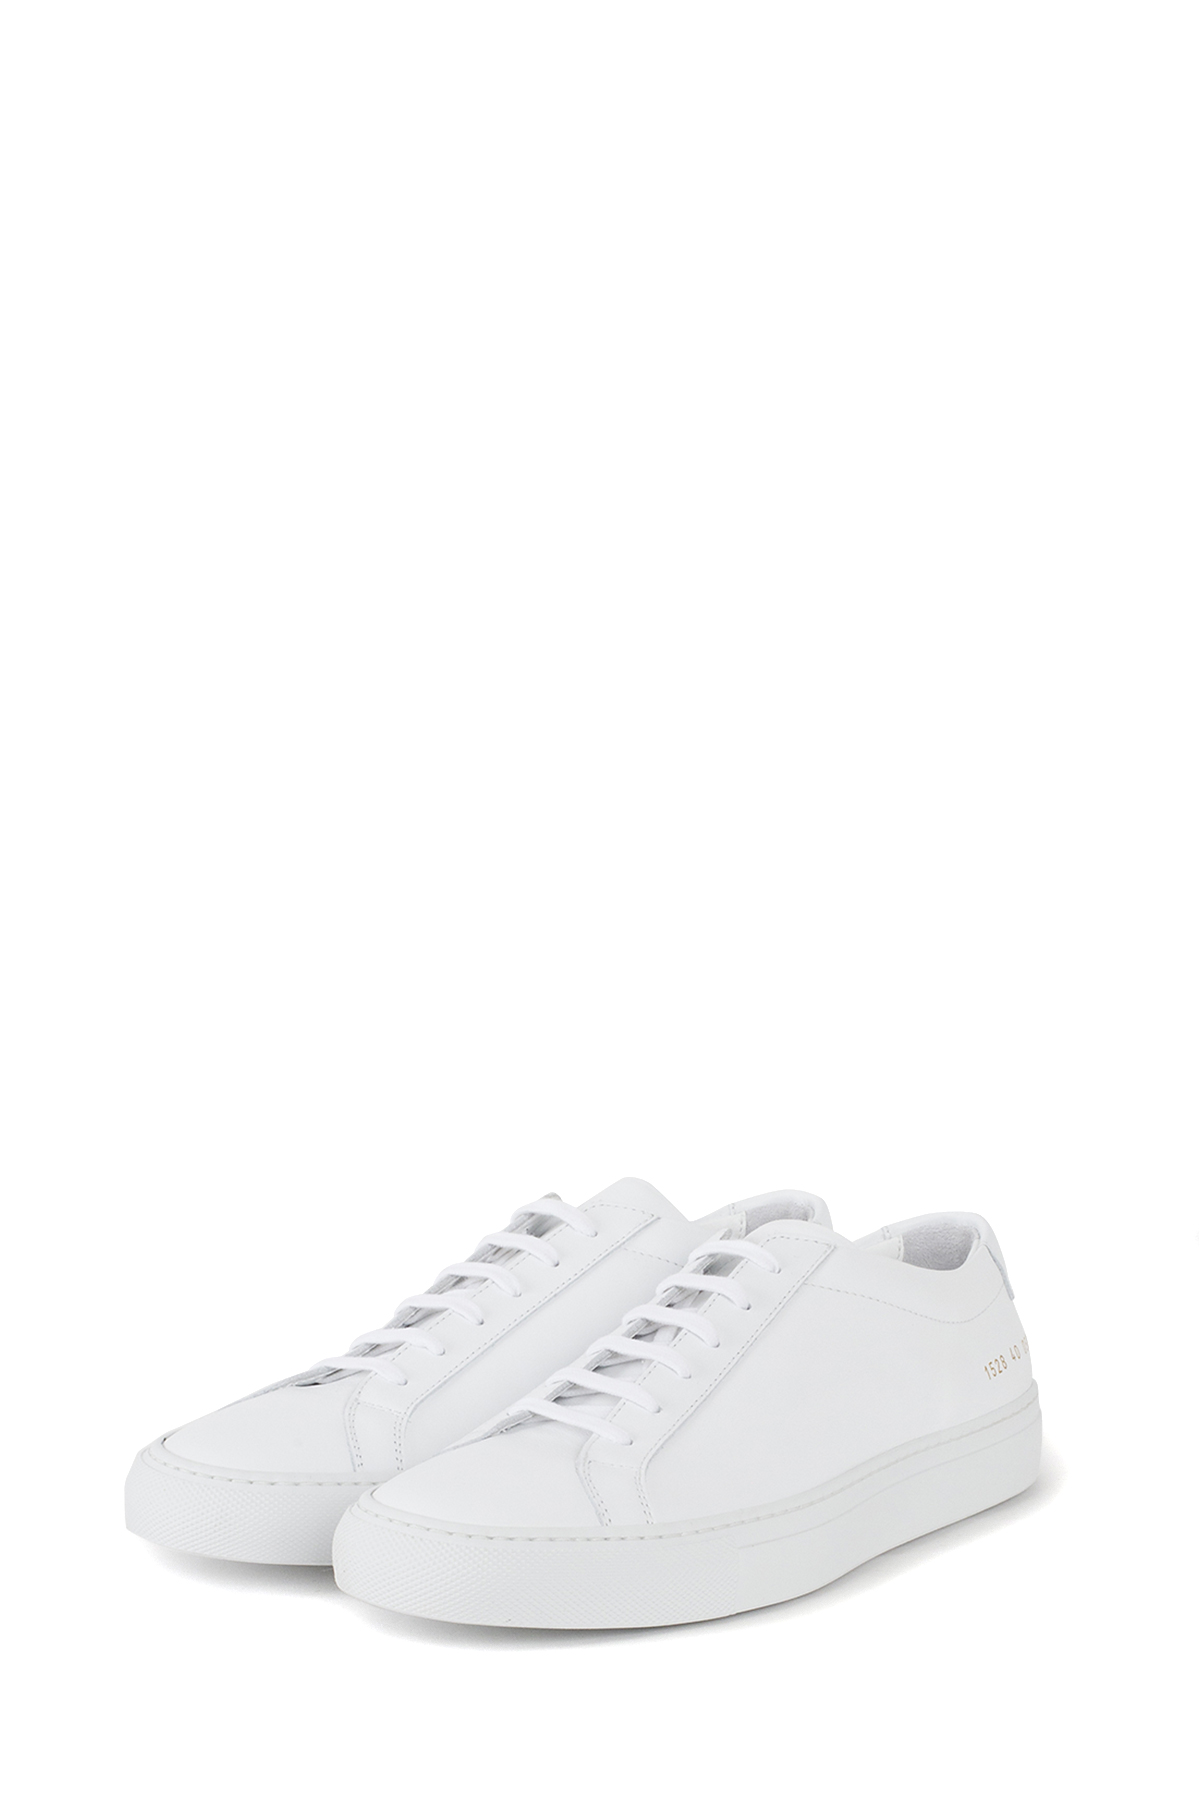 Common Projects : Original Achilles Low (White)